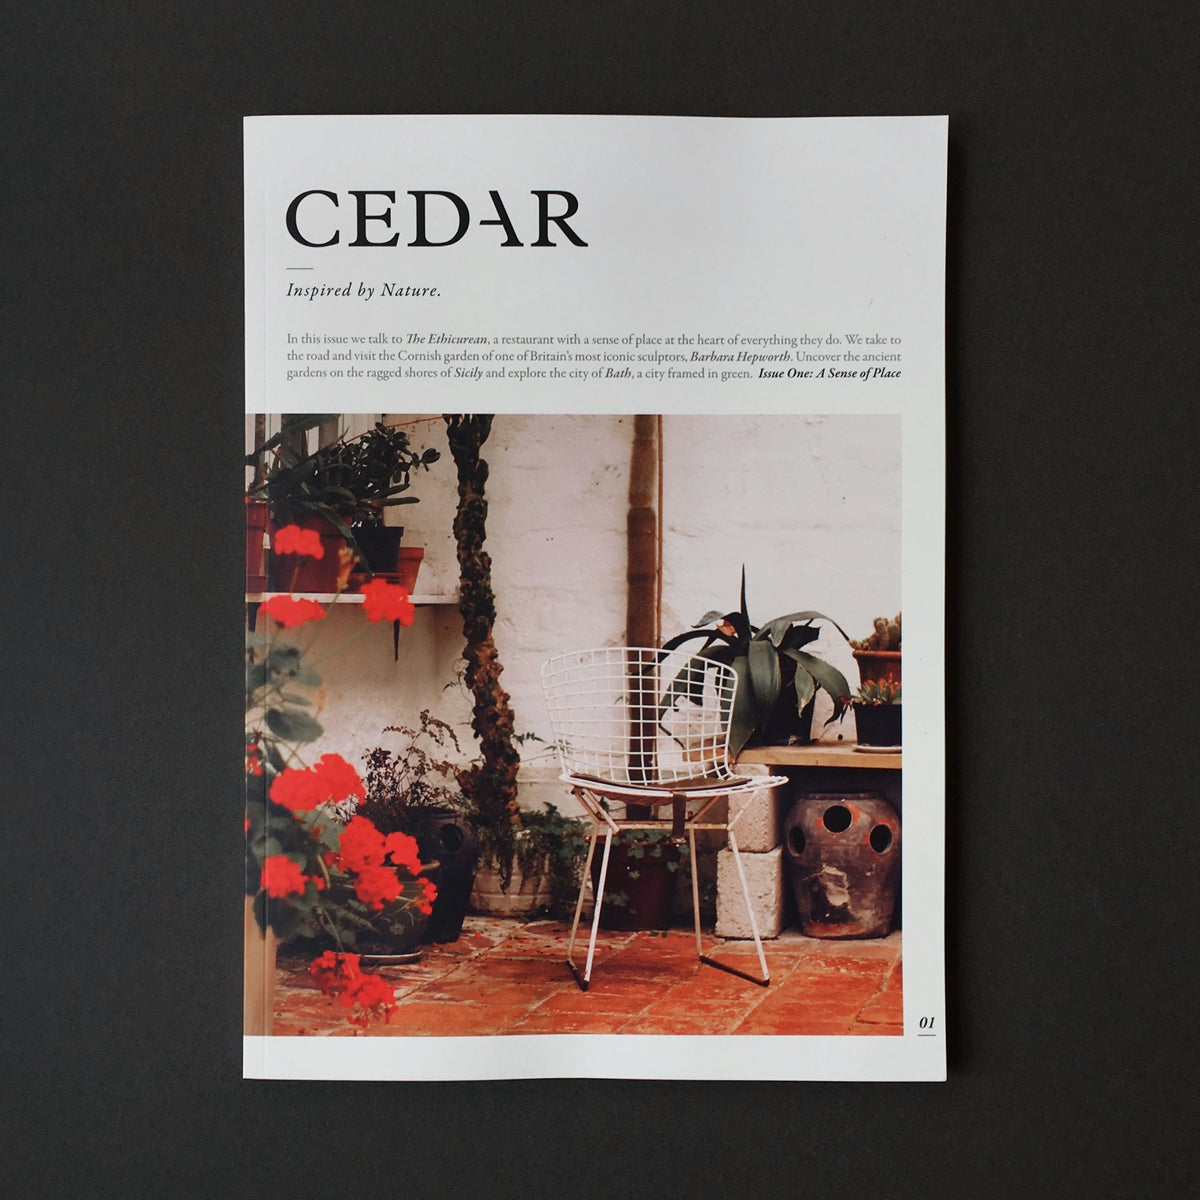 Image of 'Cedar' Magazine.